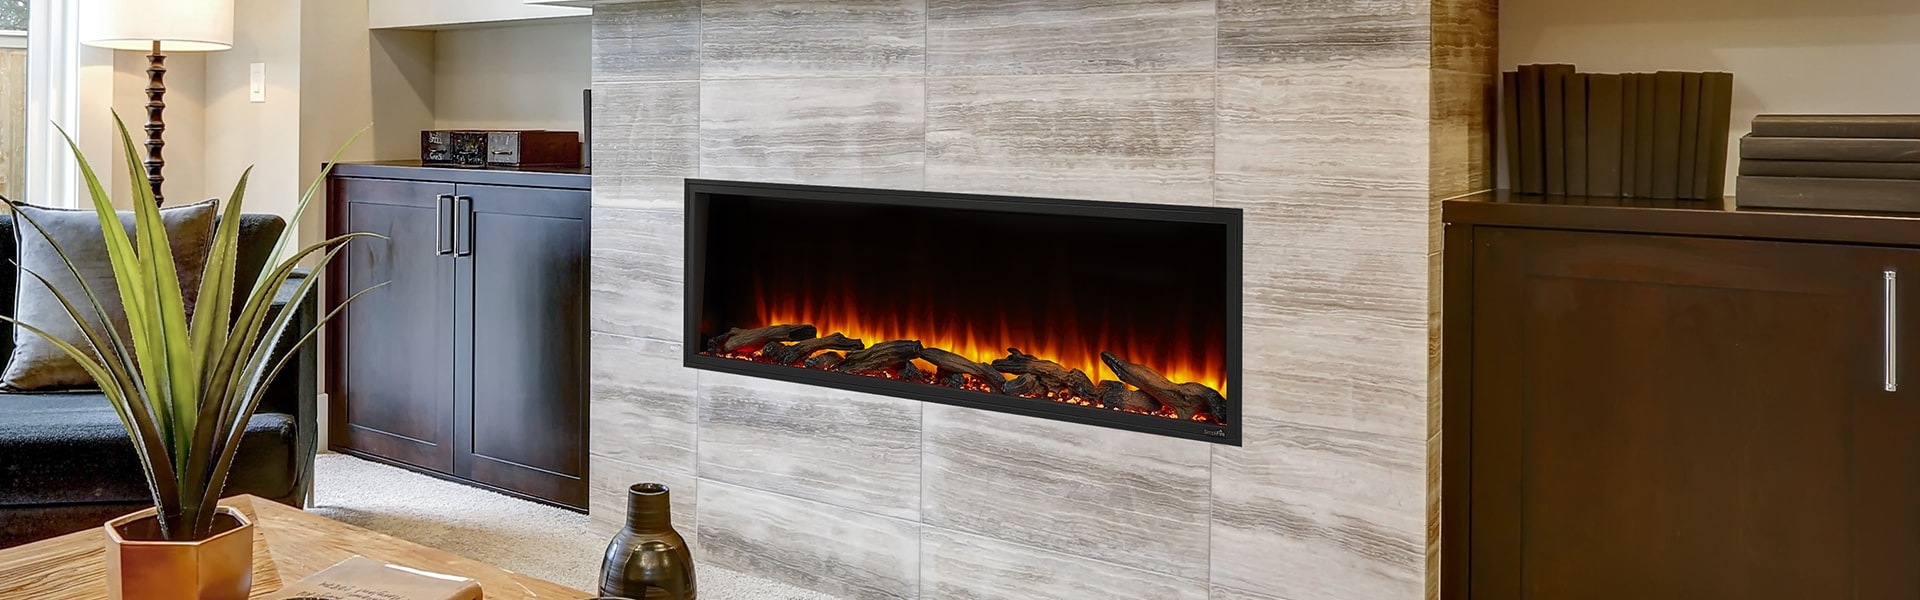 <p>SimpliFire Scion Electric Fireplace</p>